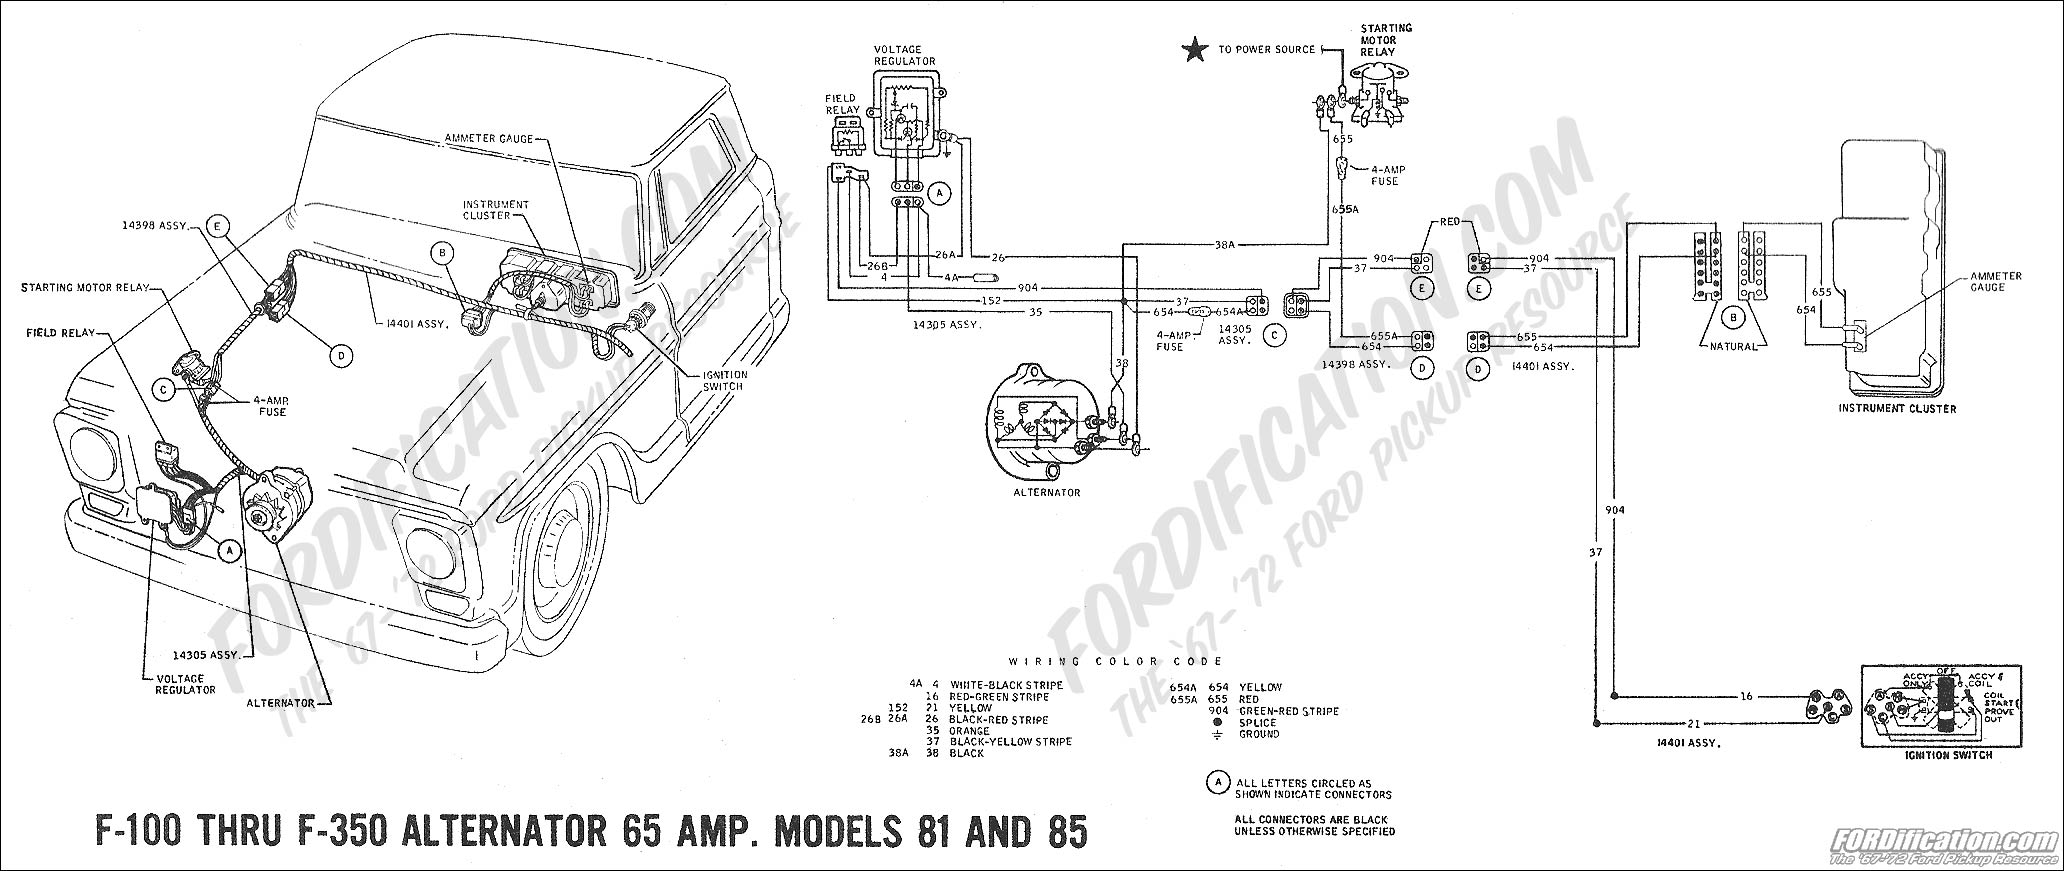 wiring_69charging03 1977 ford f100 alternator wiring diagram wiring diagram and  at soozxer.org